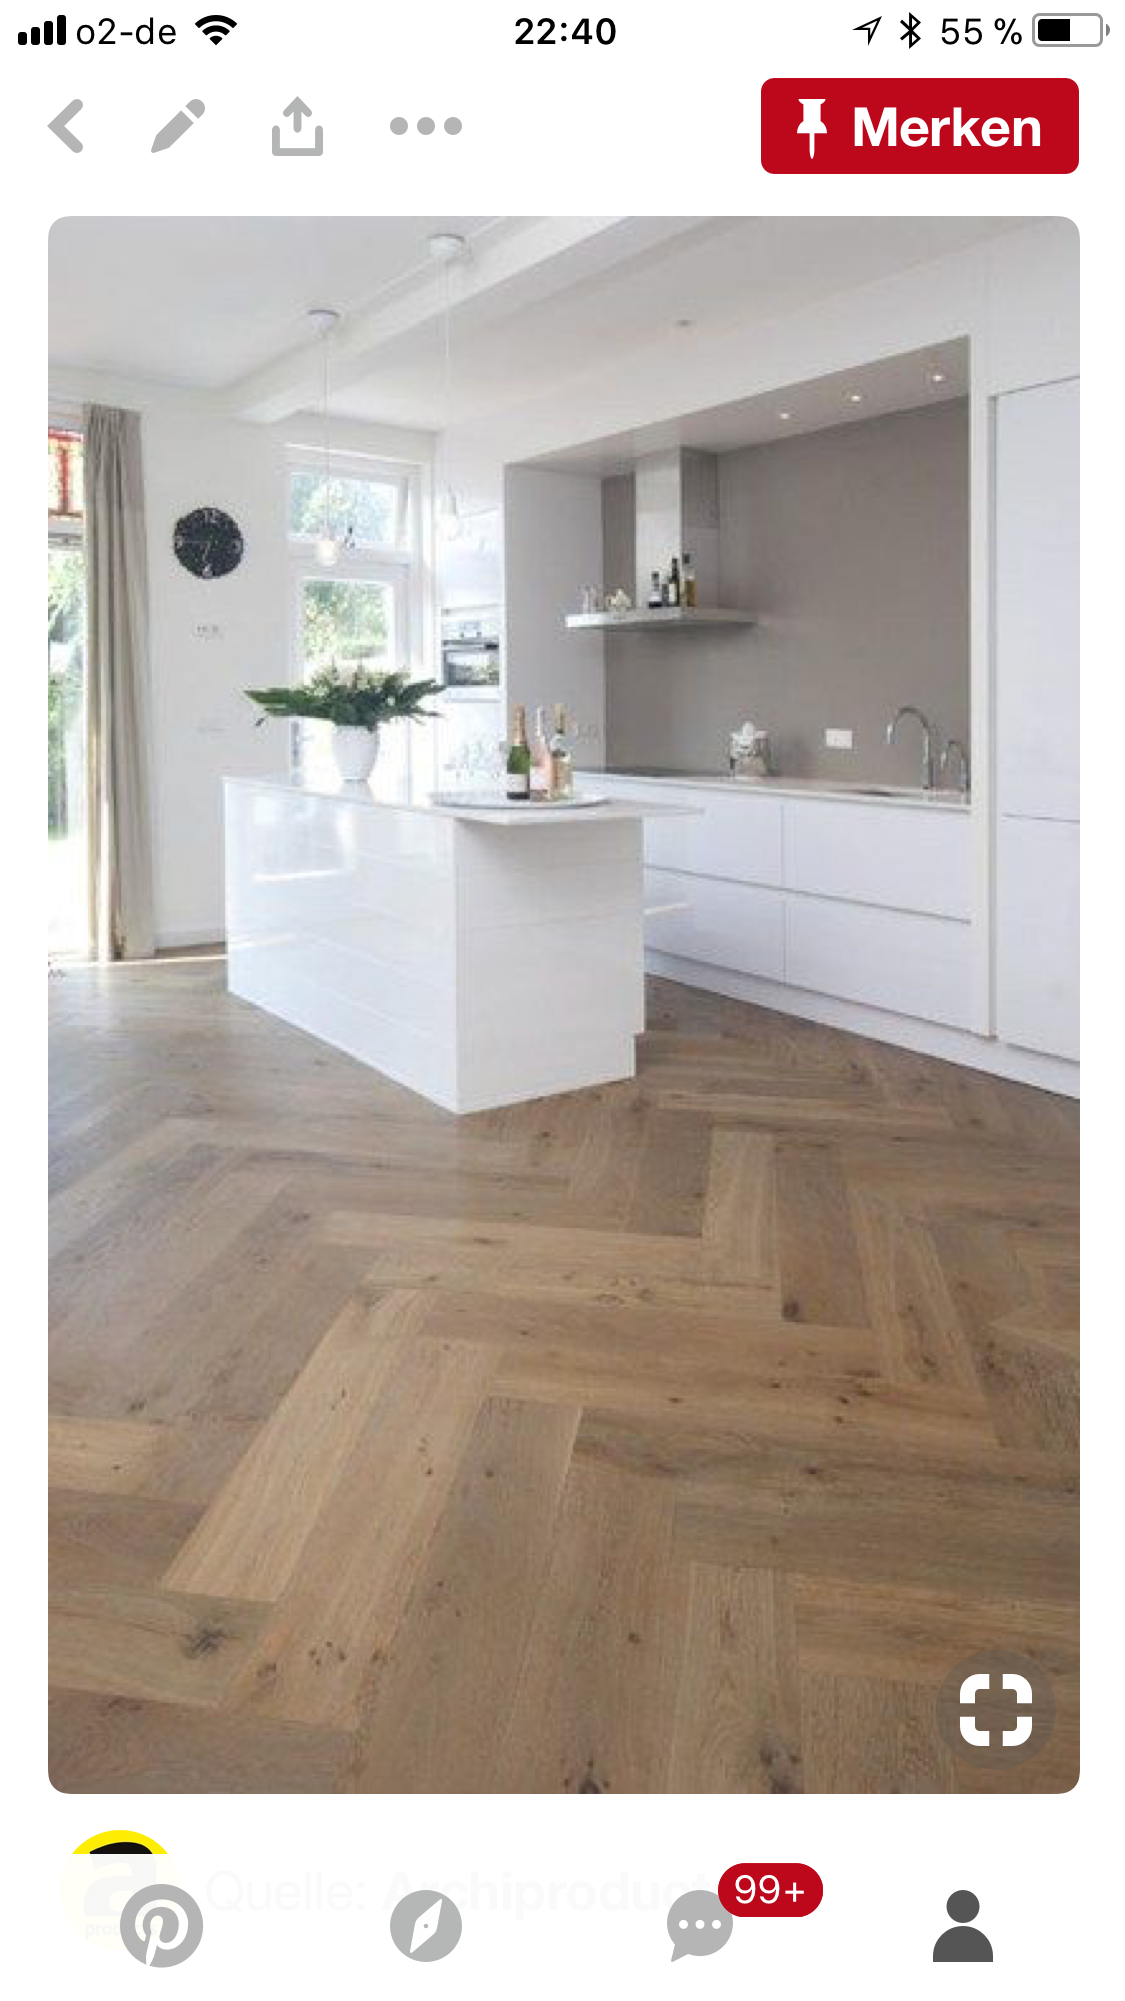 Pin By Agnes Sukau On Boden Interior Design Kitchen Small Flooring Home